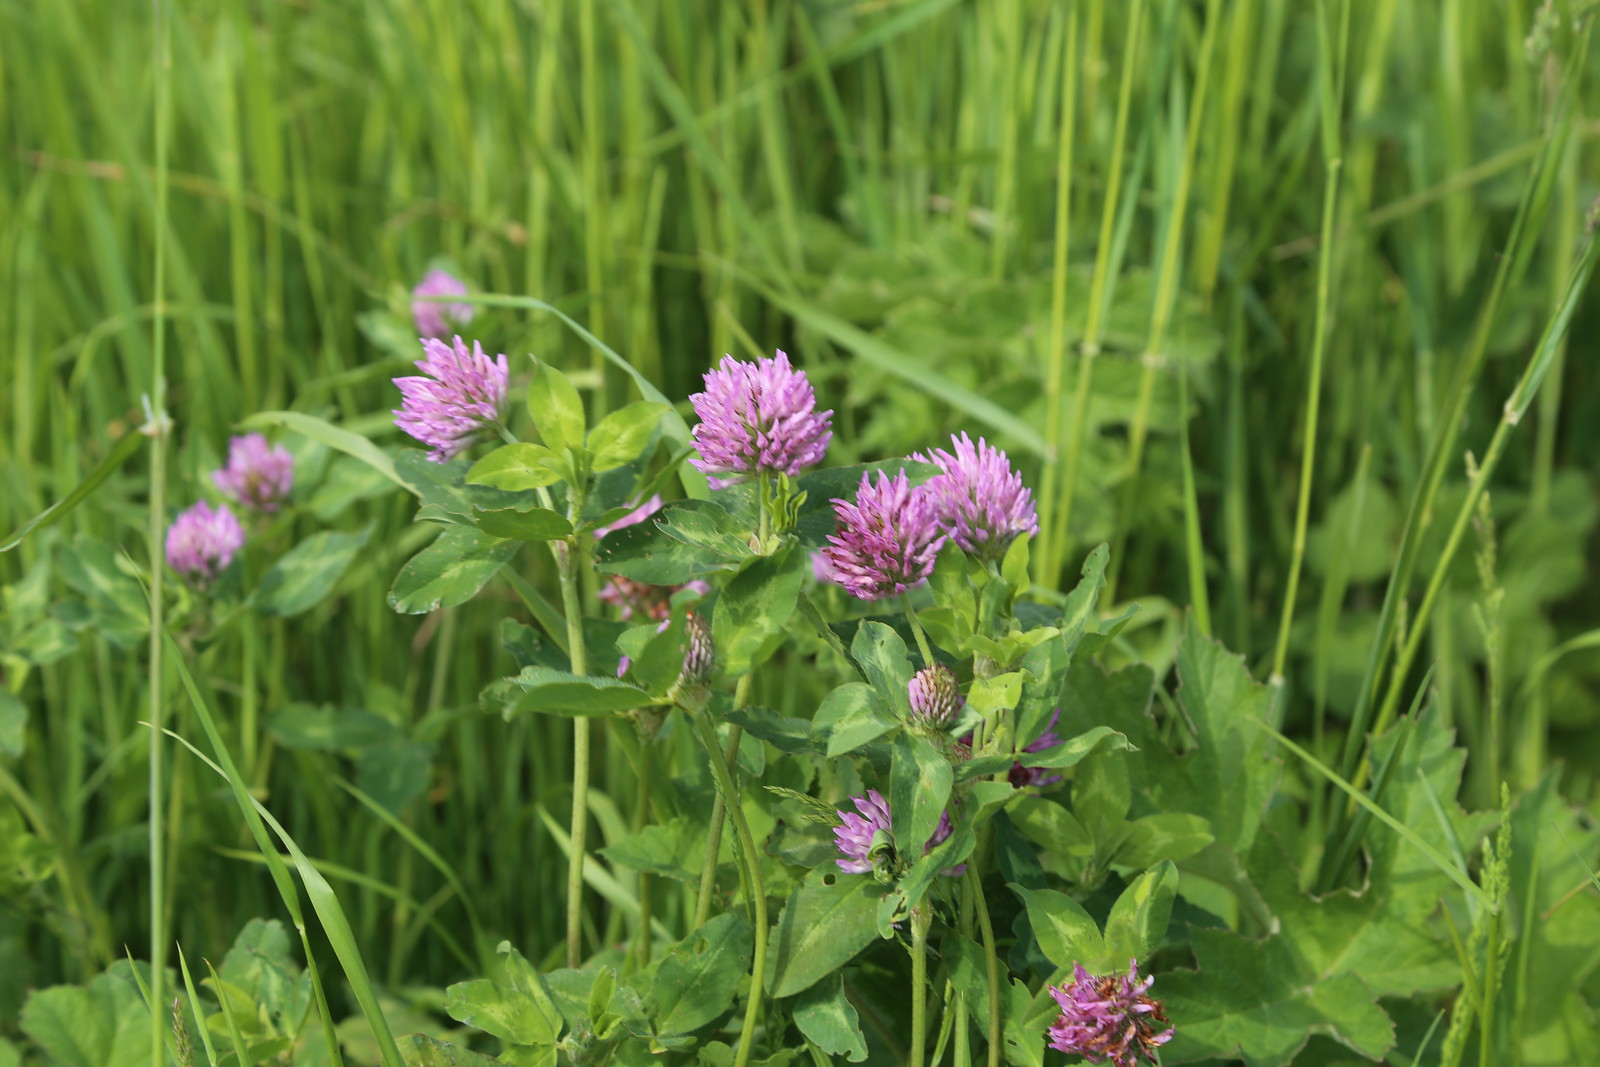 Red Clover - Otford to Eynsford Walk